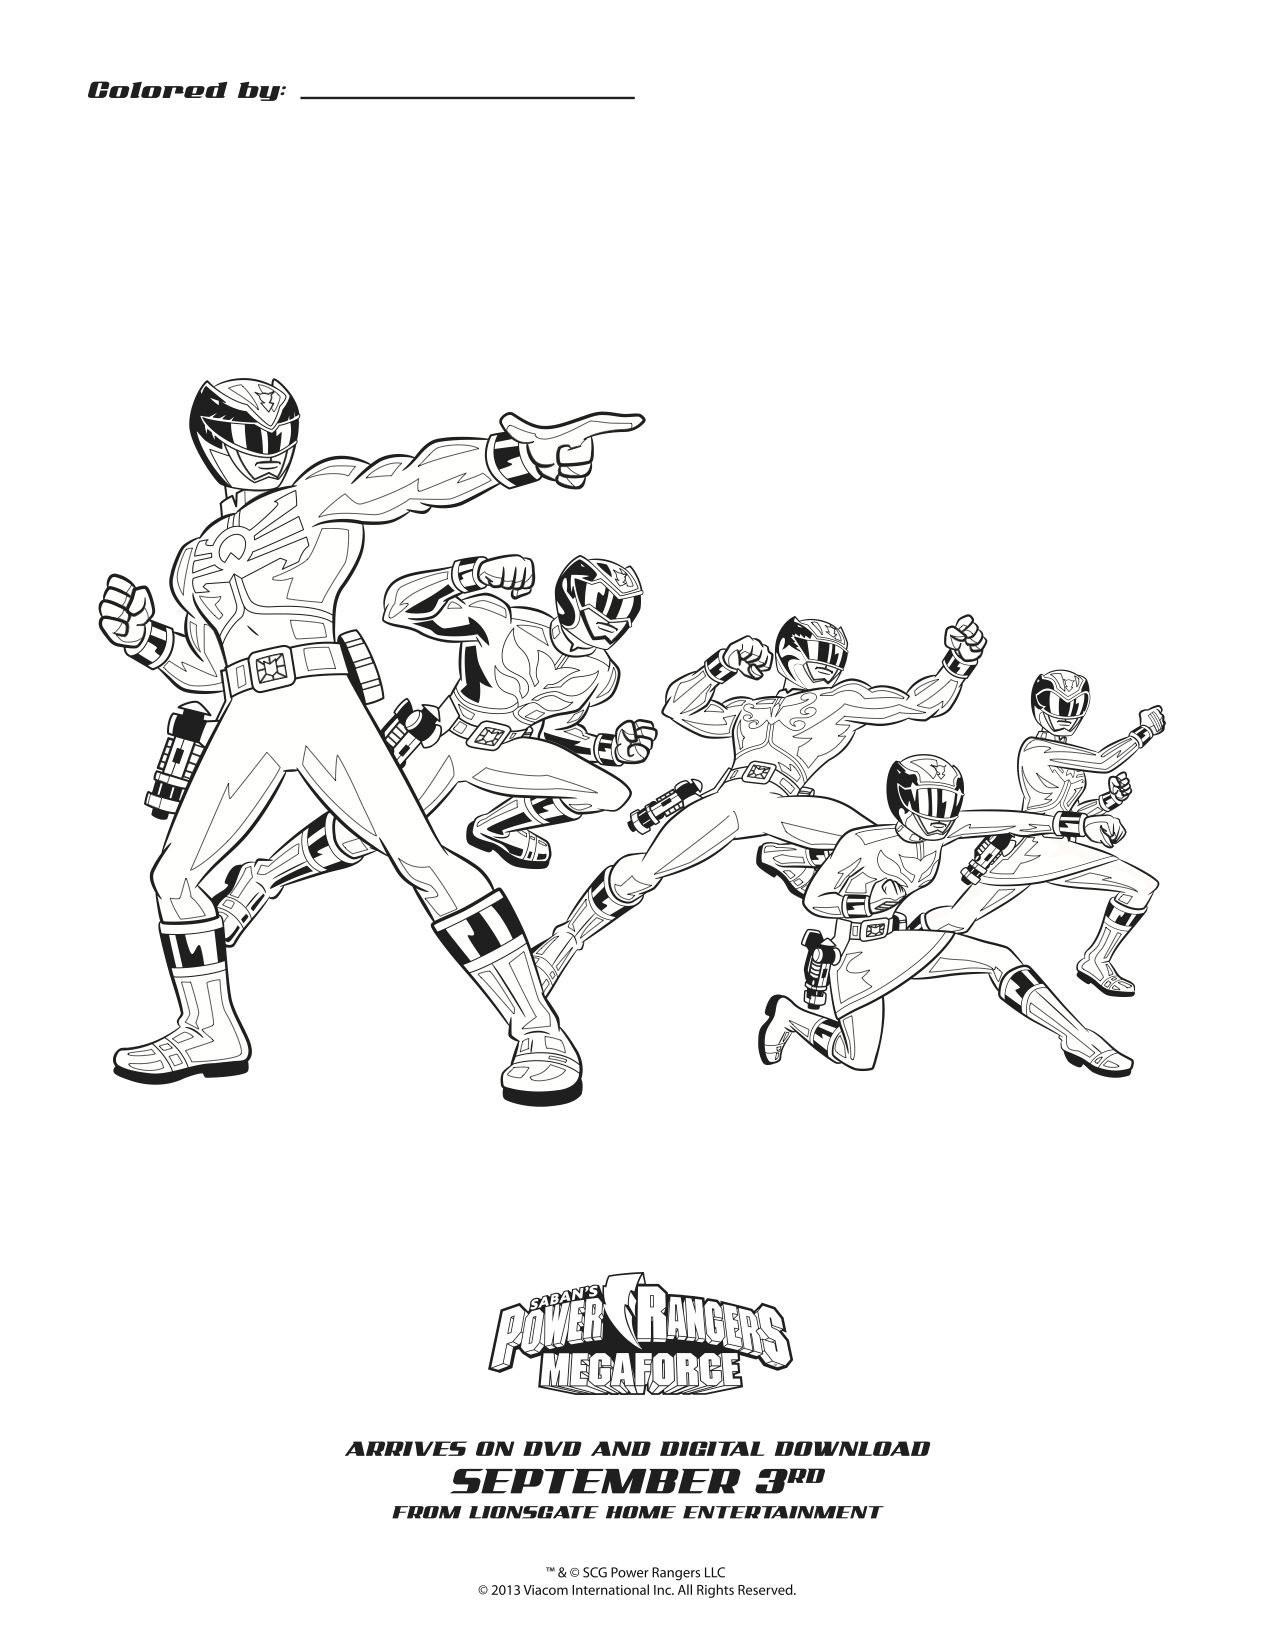 Coloring pages for power rangers - Power Rangers Megaforce Printable Coloring Sheet